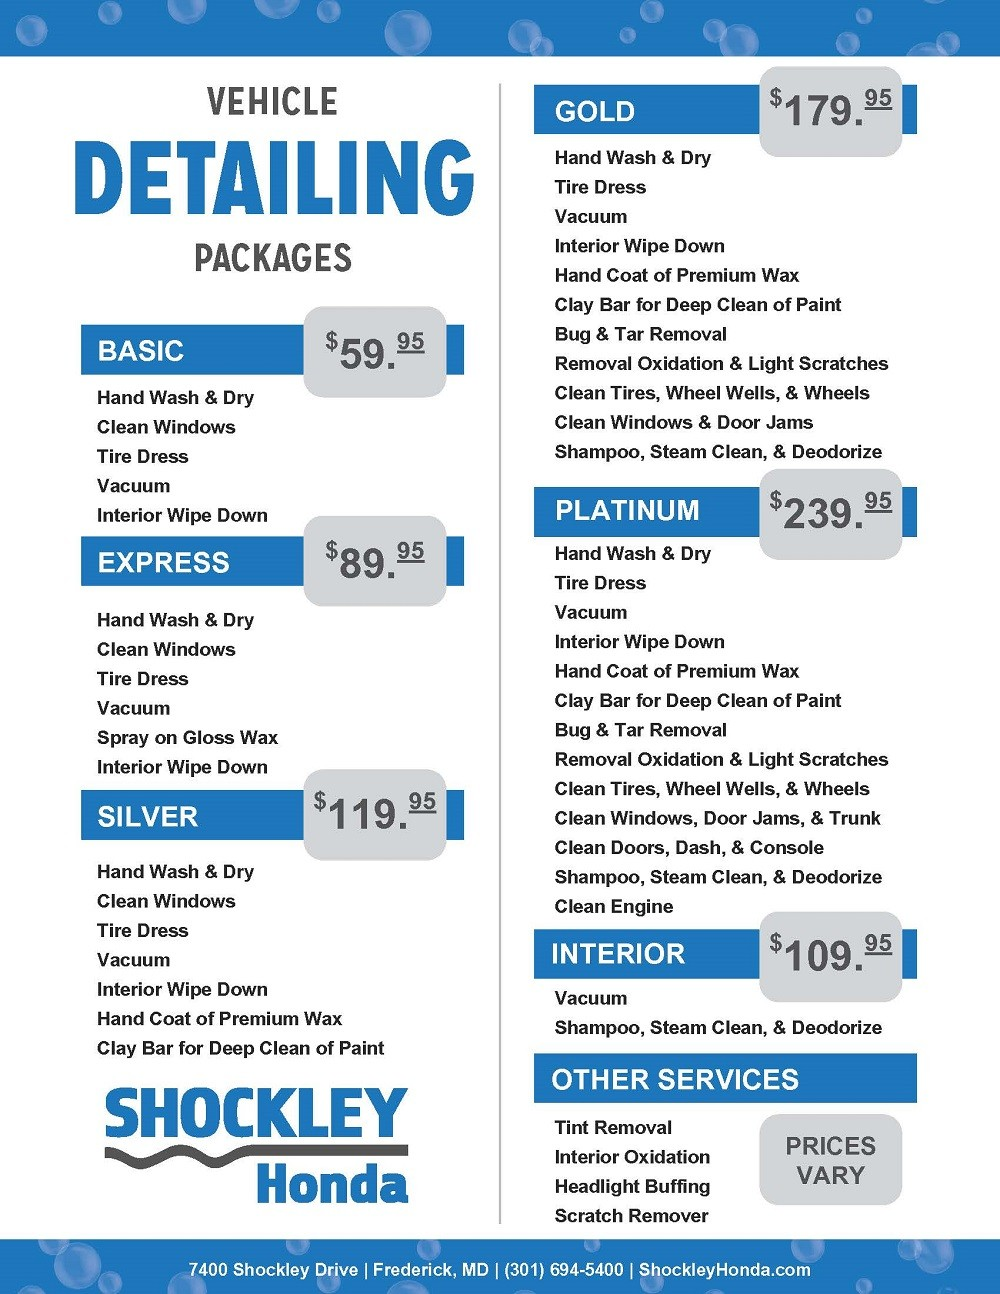 Vehicle Detailing Packages